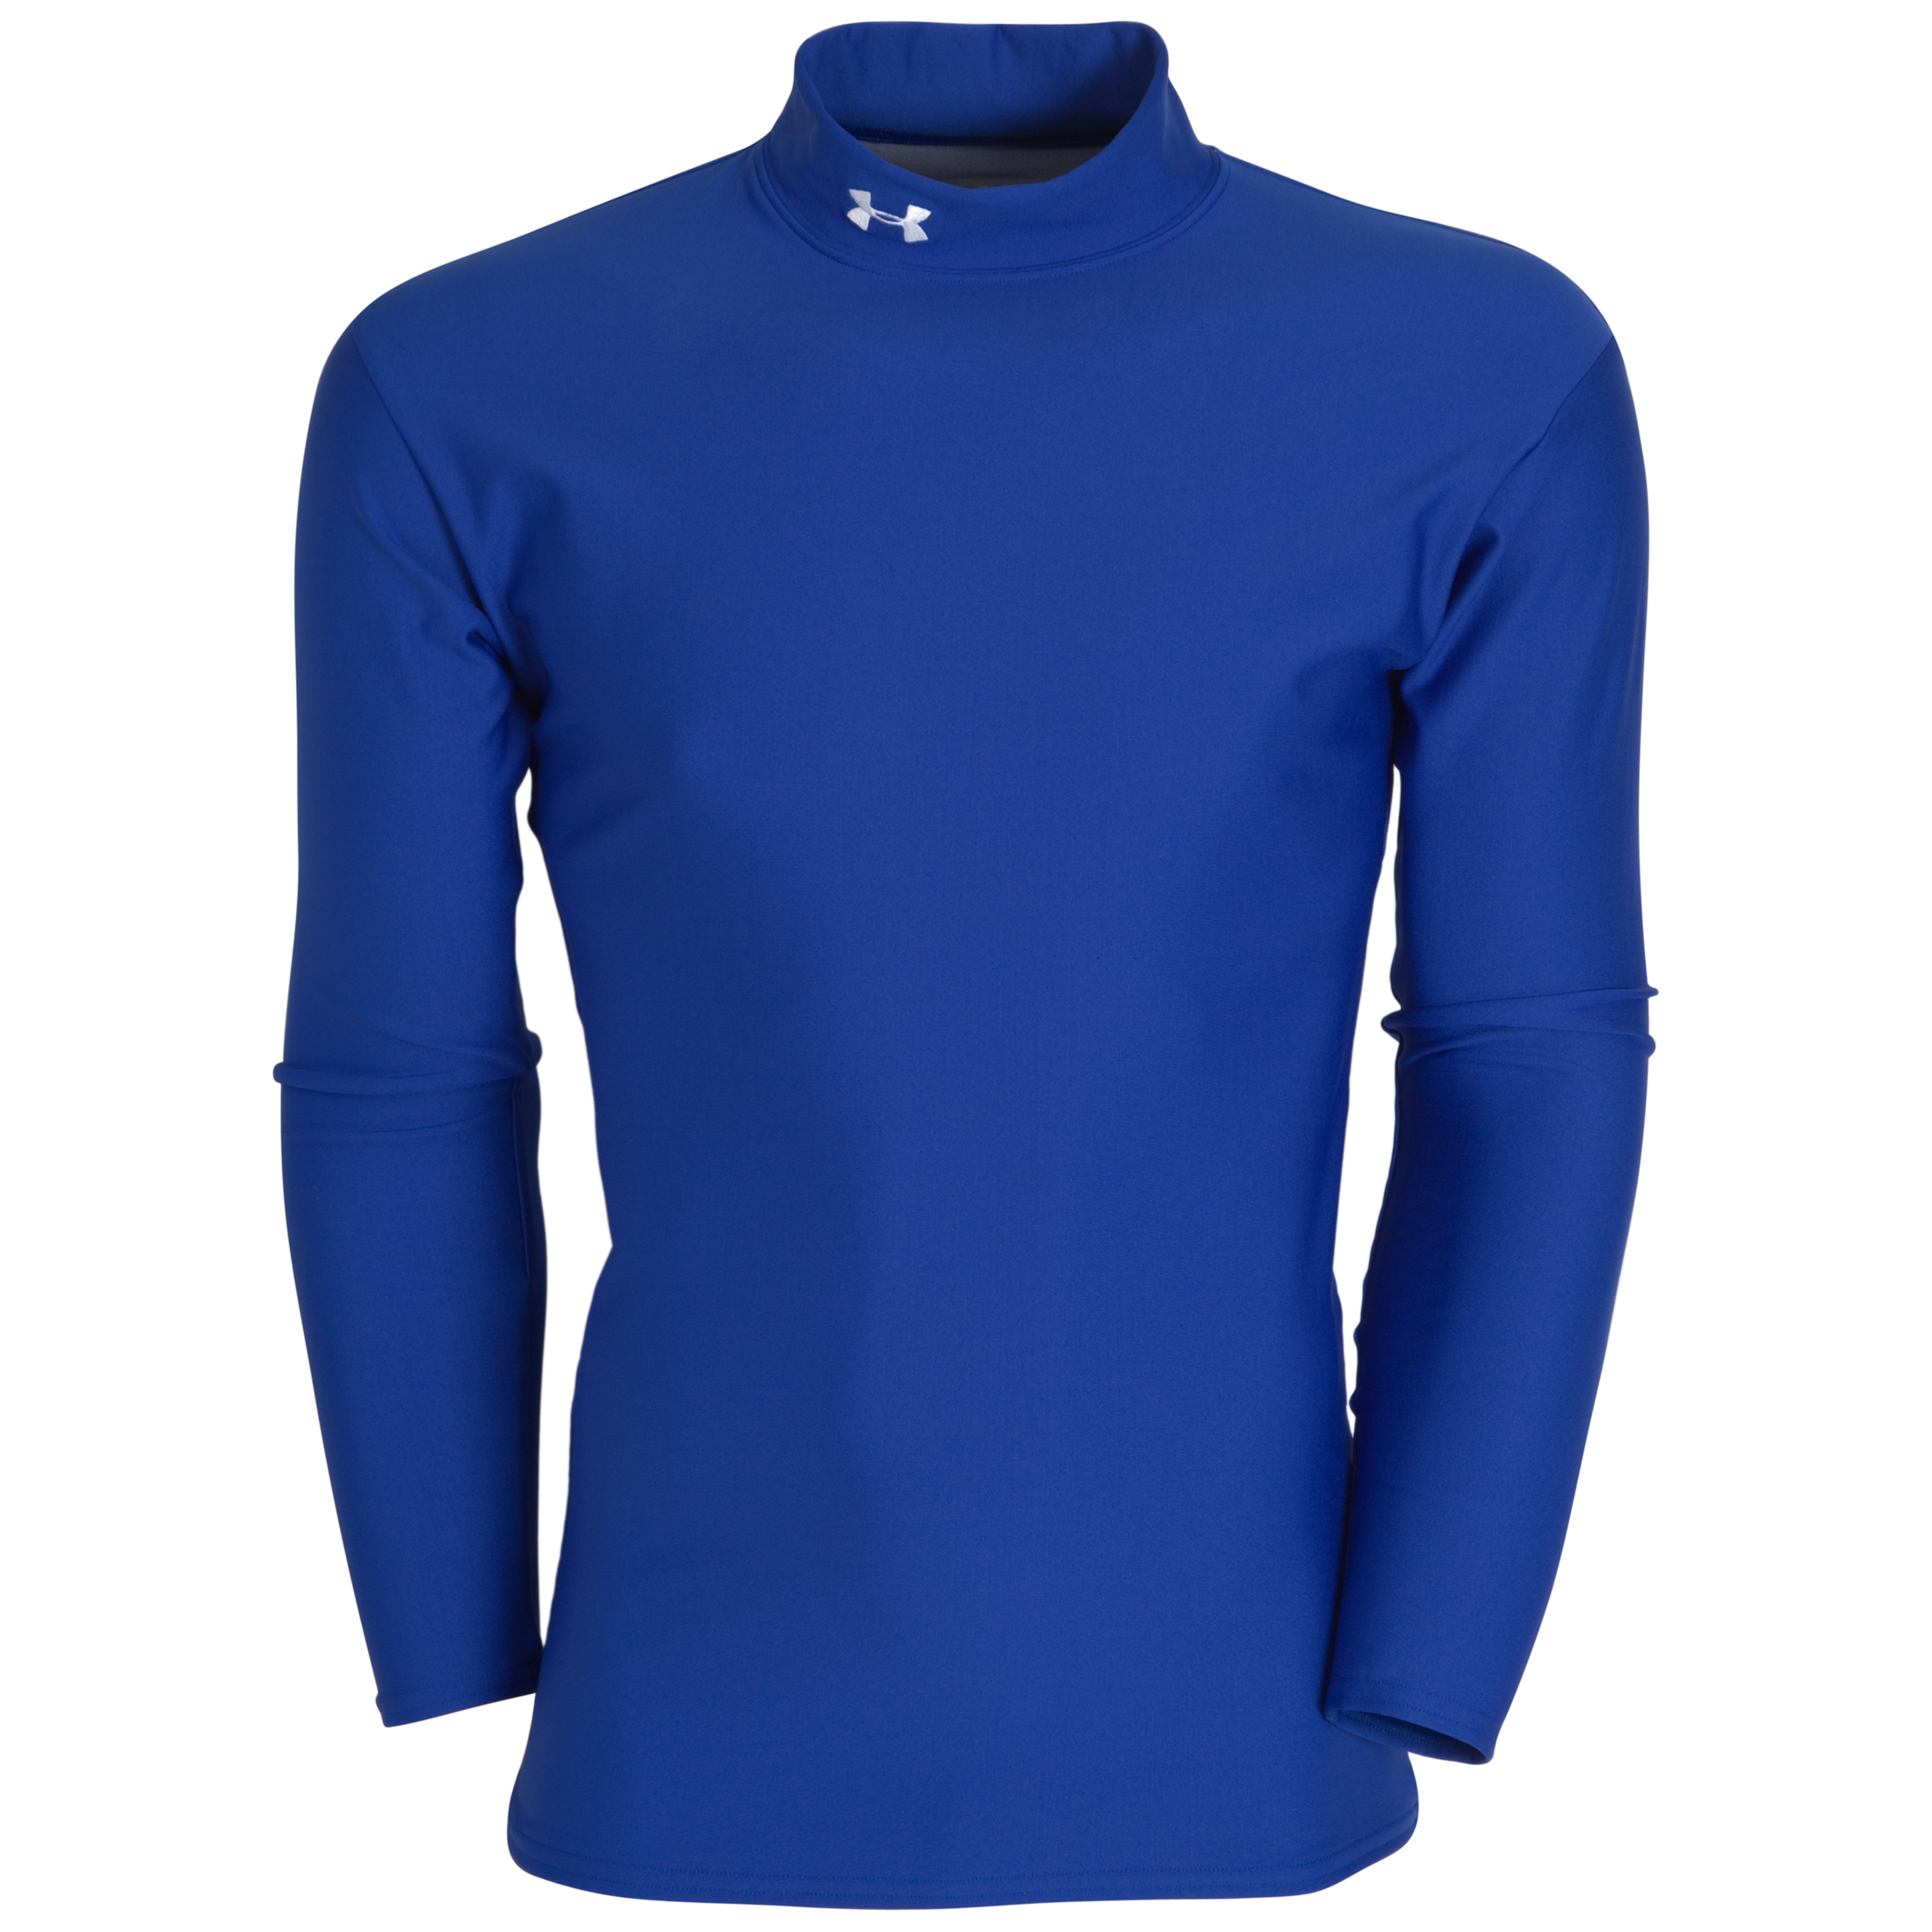 Under Armour Coldgear Longsleeve Mock - Royal/White